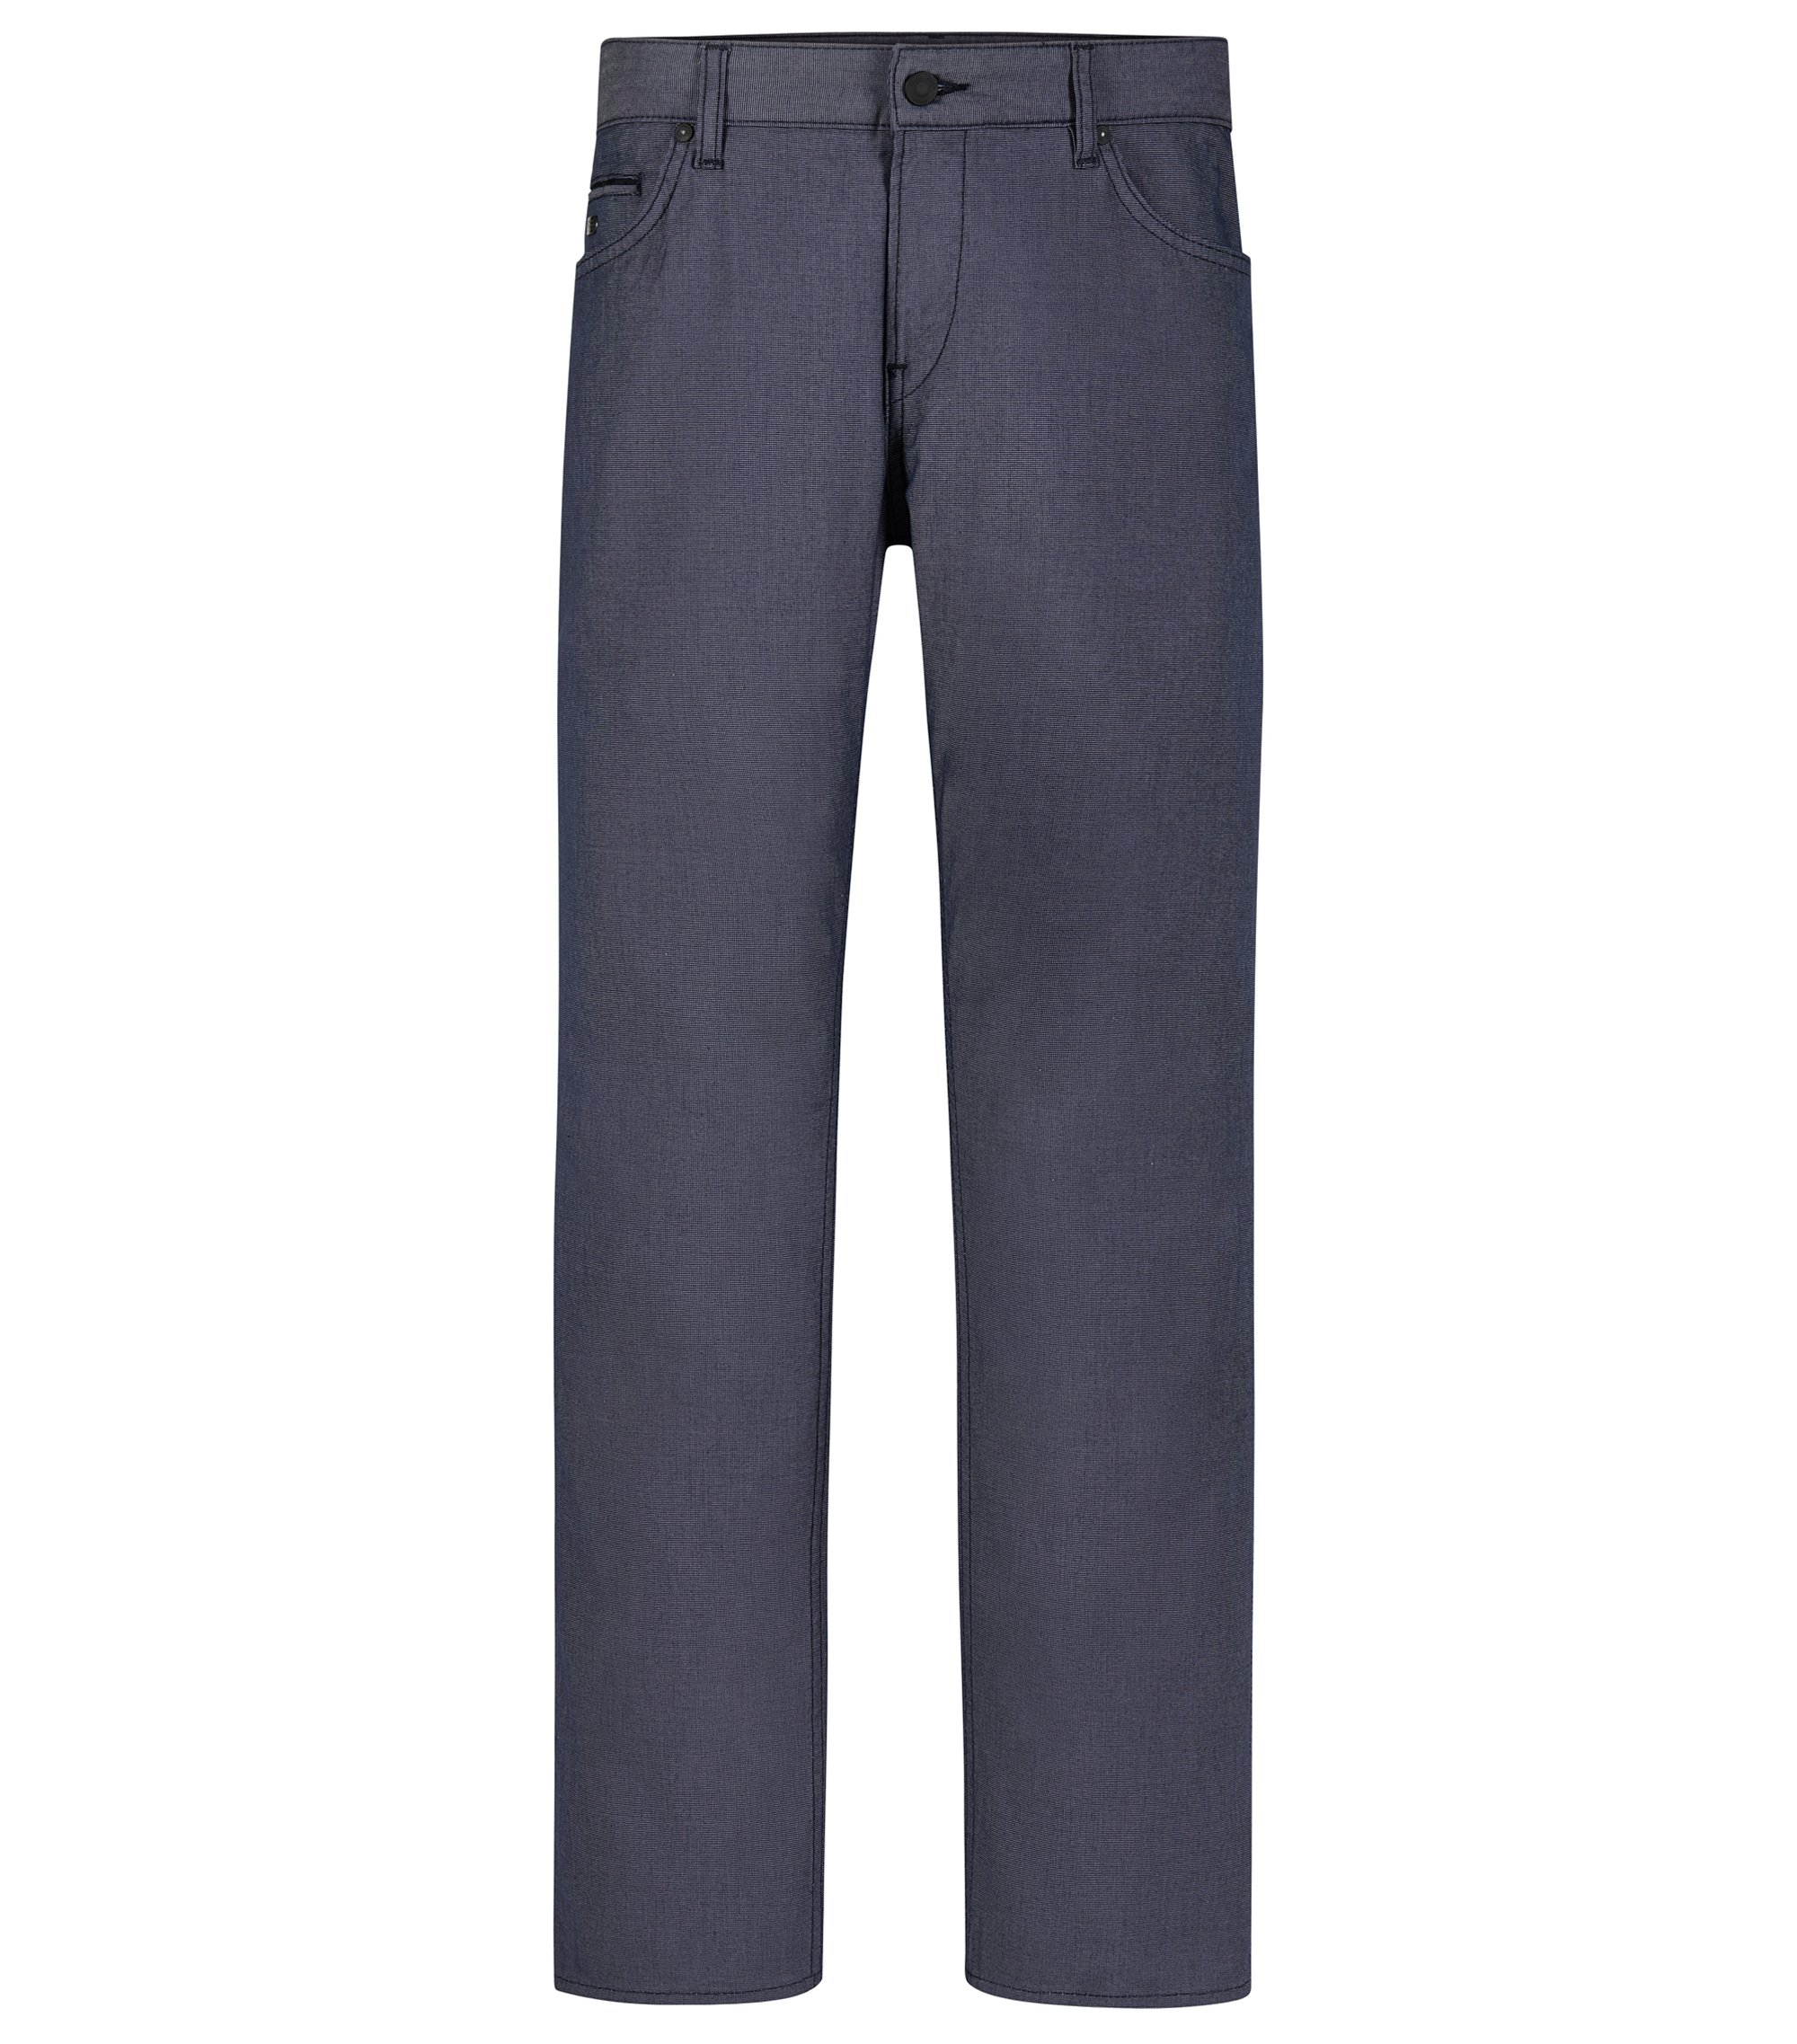 Stretch Cotton Jean, Slim FIt | C-Delaware, Dark Blue